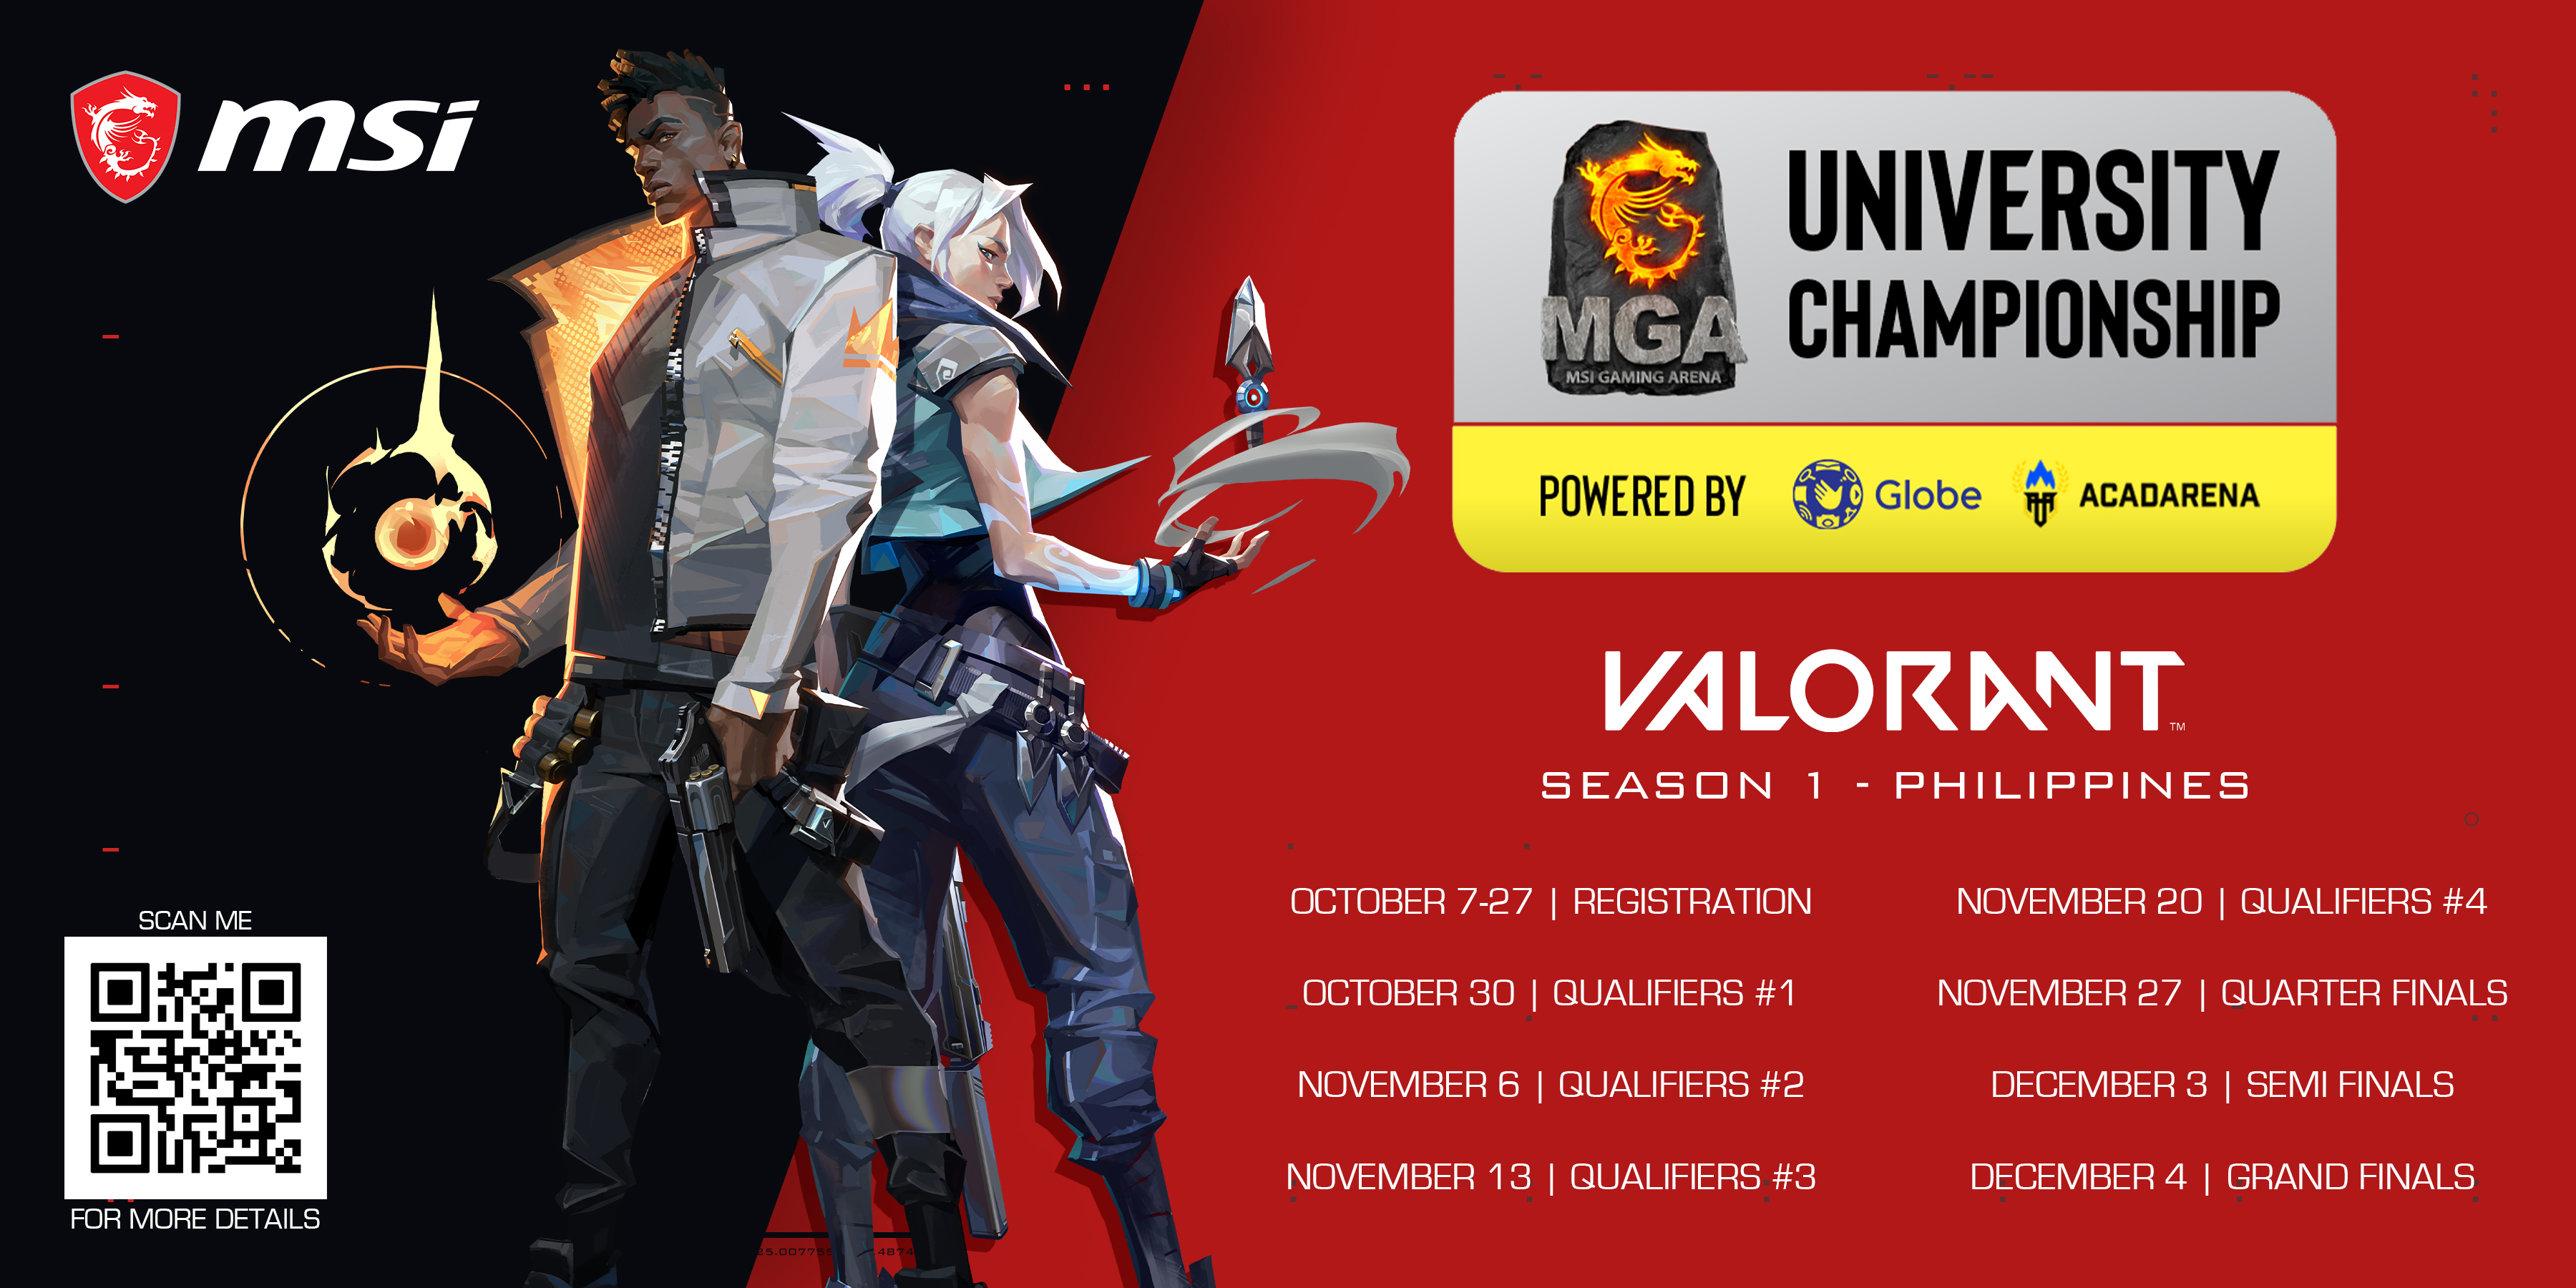 MSI Gaming Arena to hold its first-ever University Championship in the Philippines